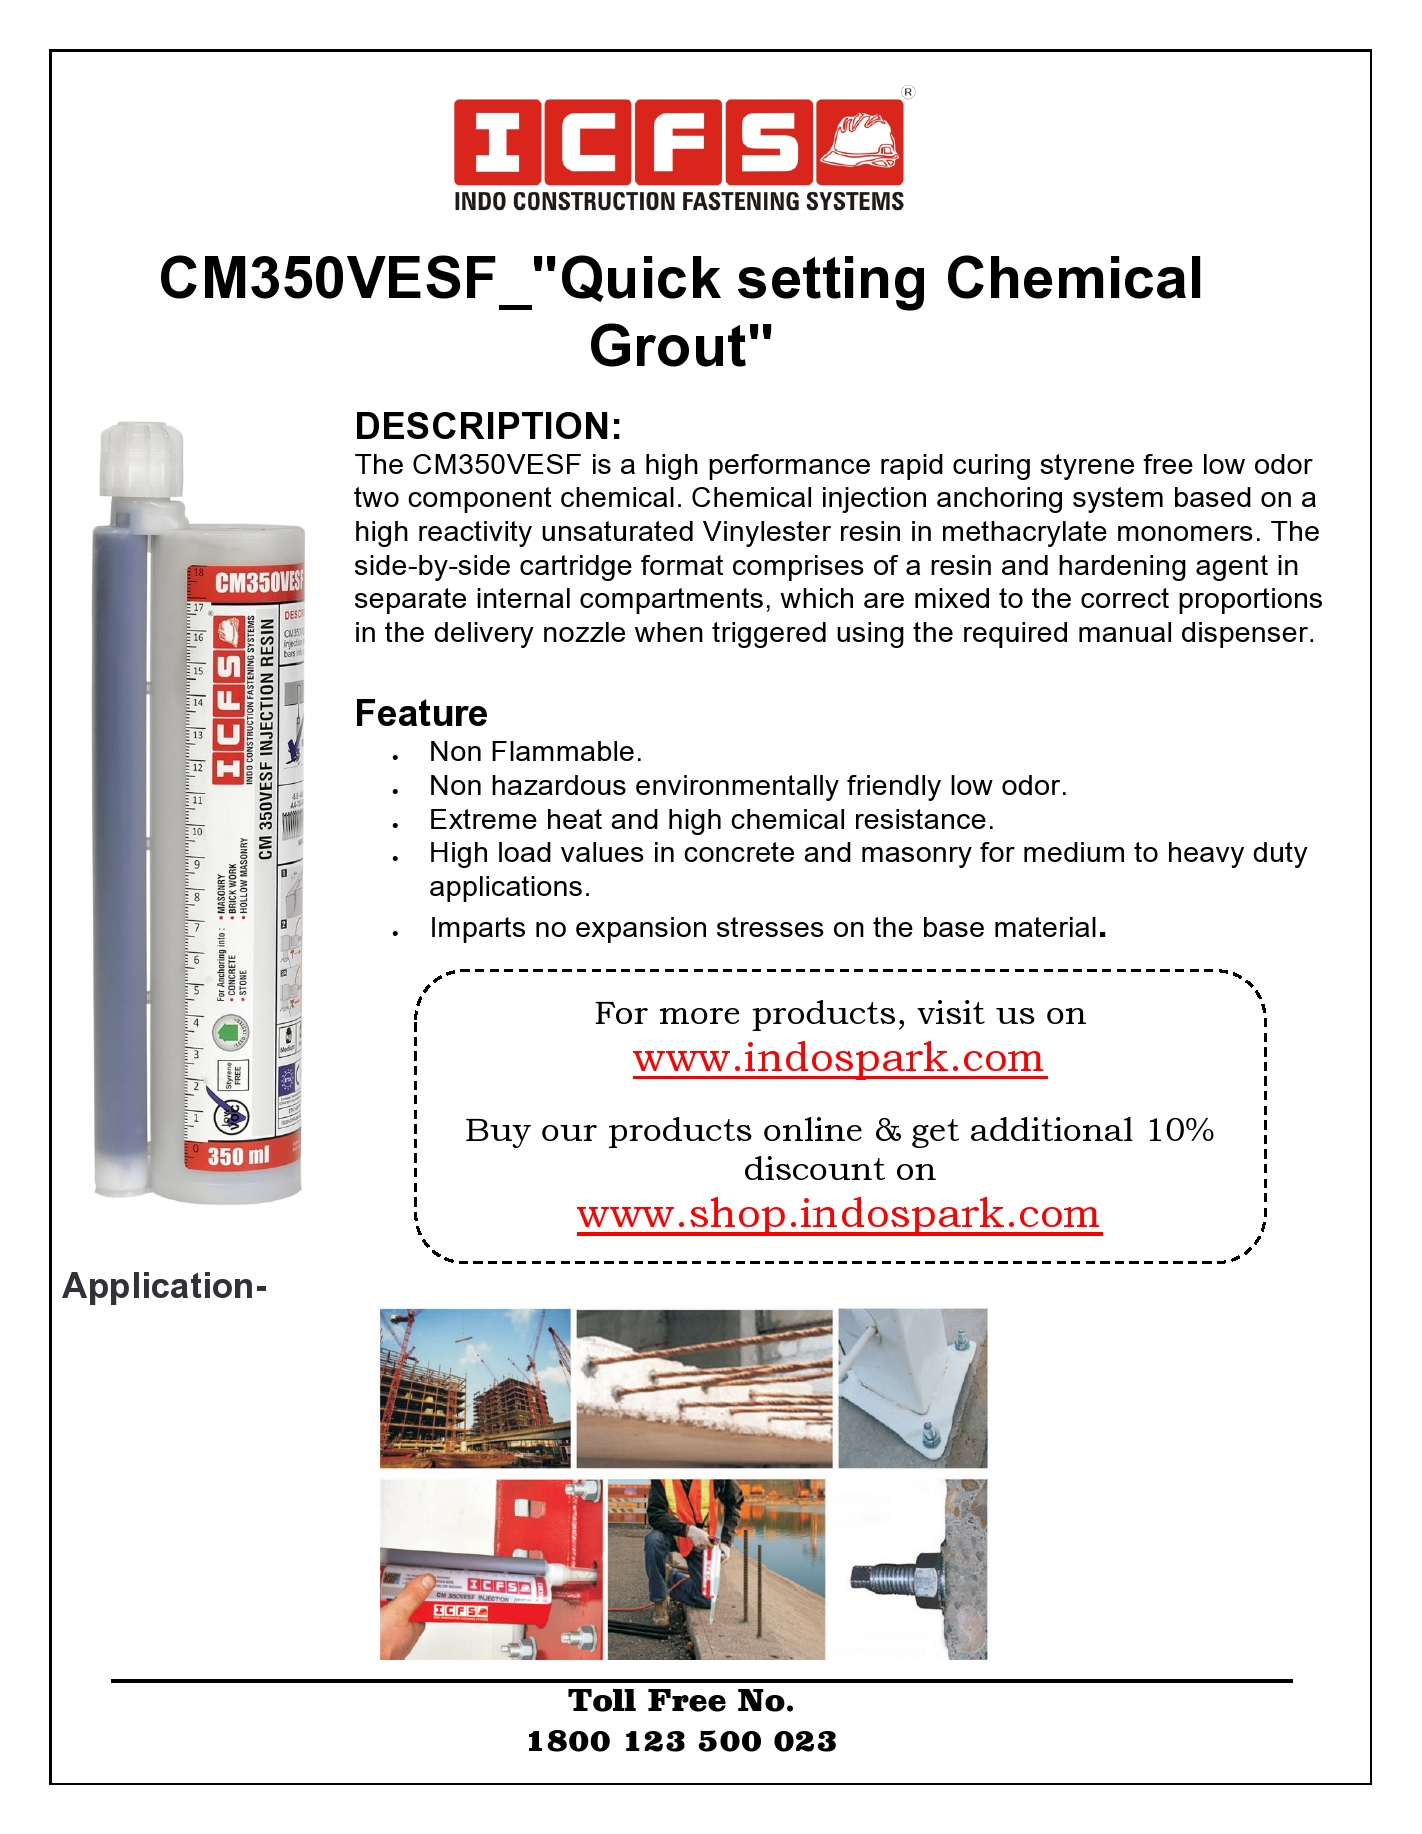 CM350VESF_Quick Setting Chemical Grout